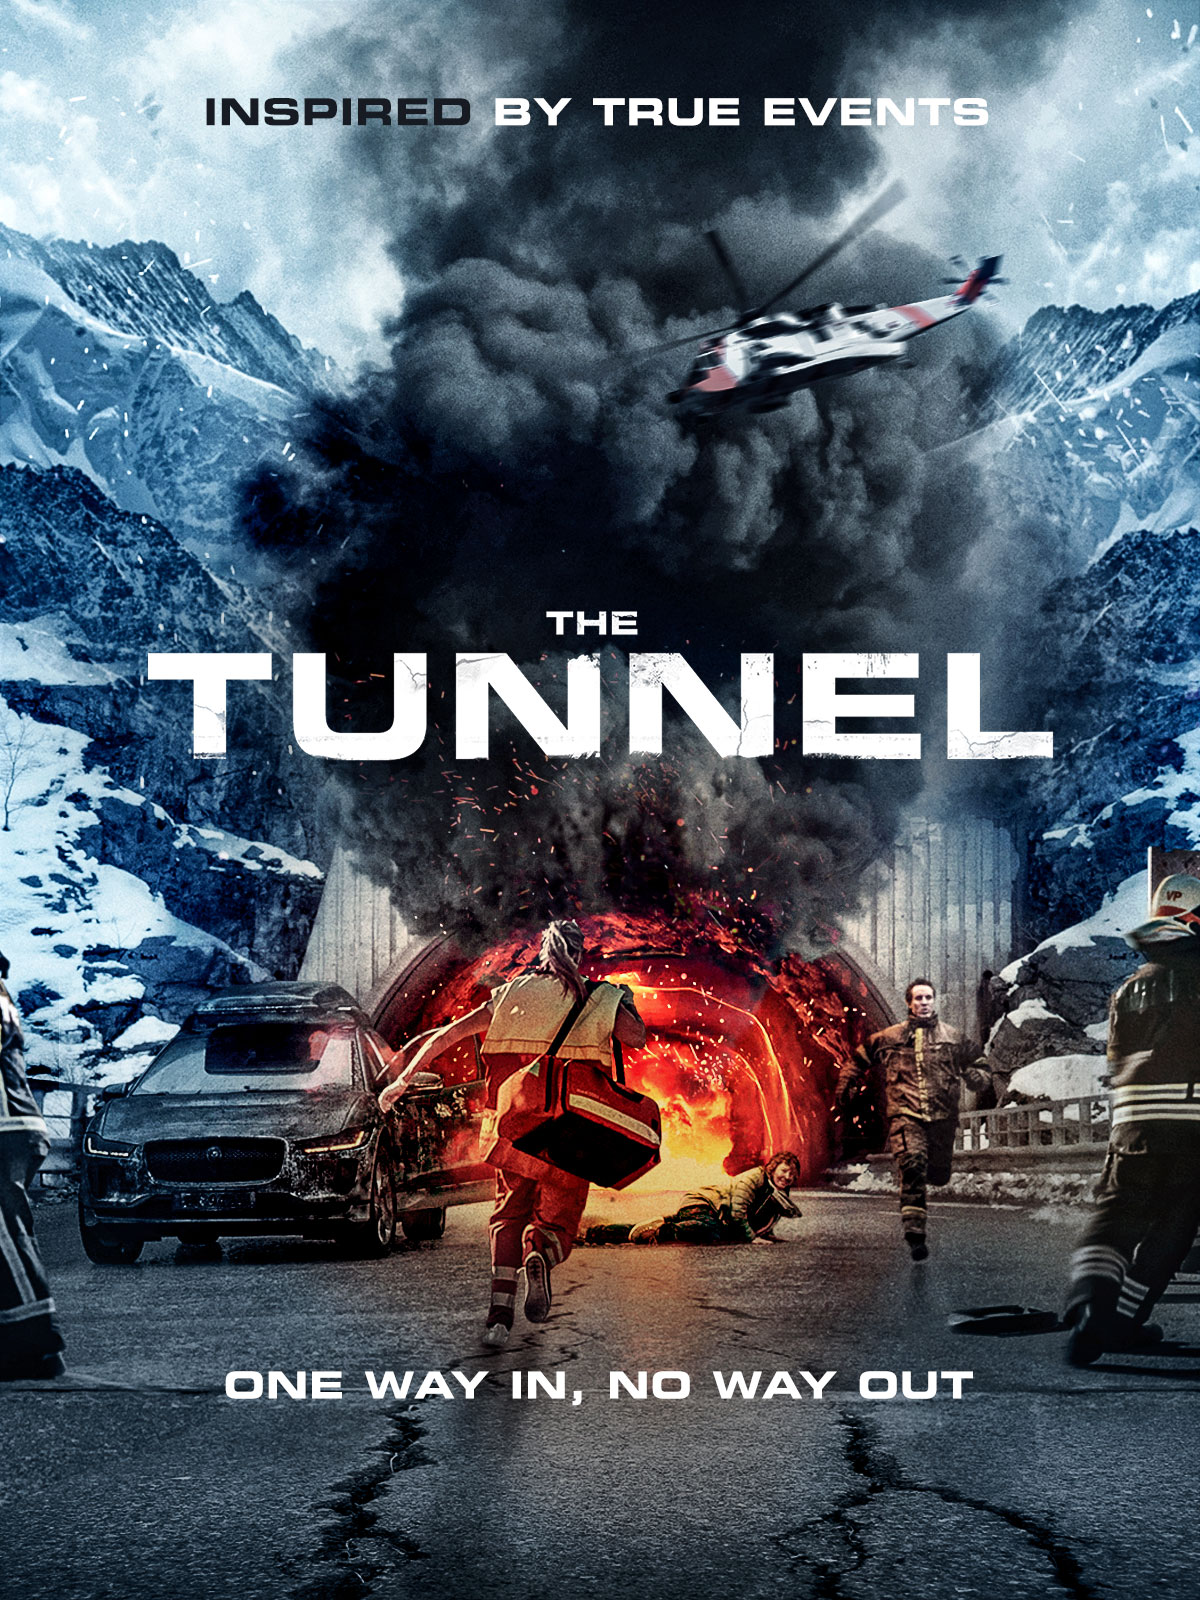 Film Review: THE TUNNEL (a.k.a. Tunnelen) (2019)